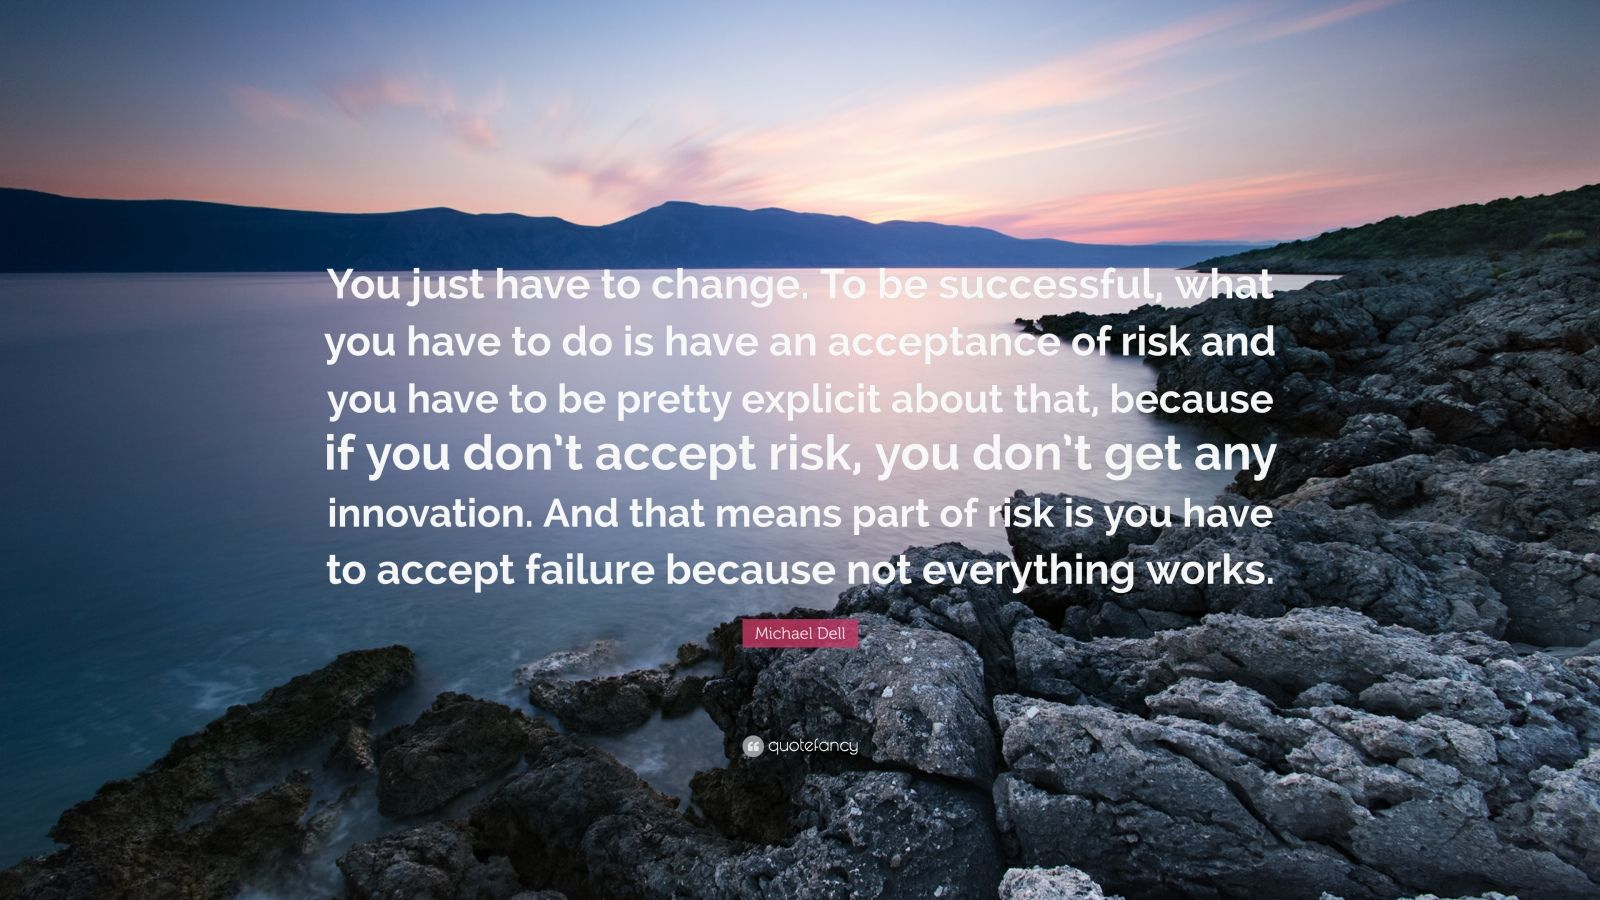 "Michael Dell Quote: ""You just have to change. To be successful, what you have to do is have an acceptance of risk and you have to be pretty explicit about that, because if you don't accept risk, you don't get any innovation. And that means part of risk is you have to accept failure because not everything works."""